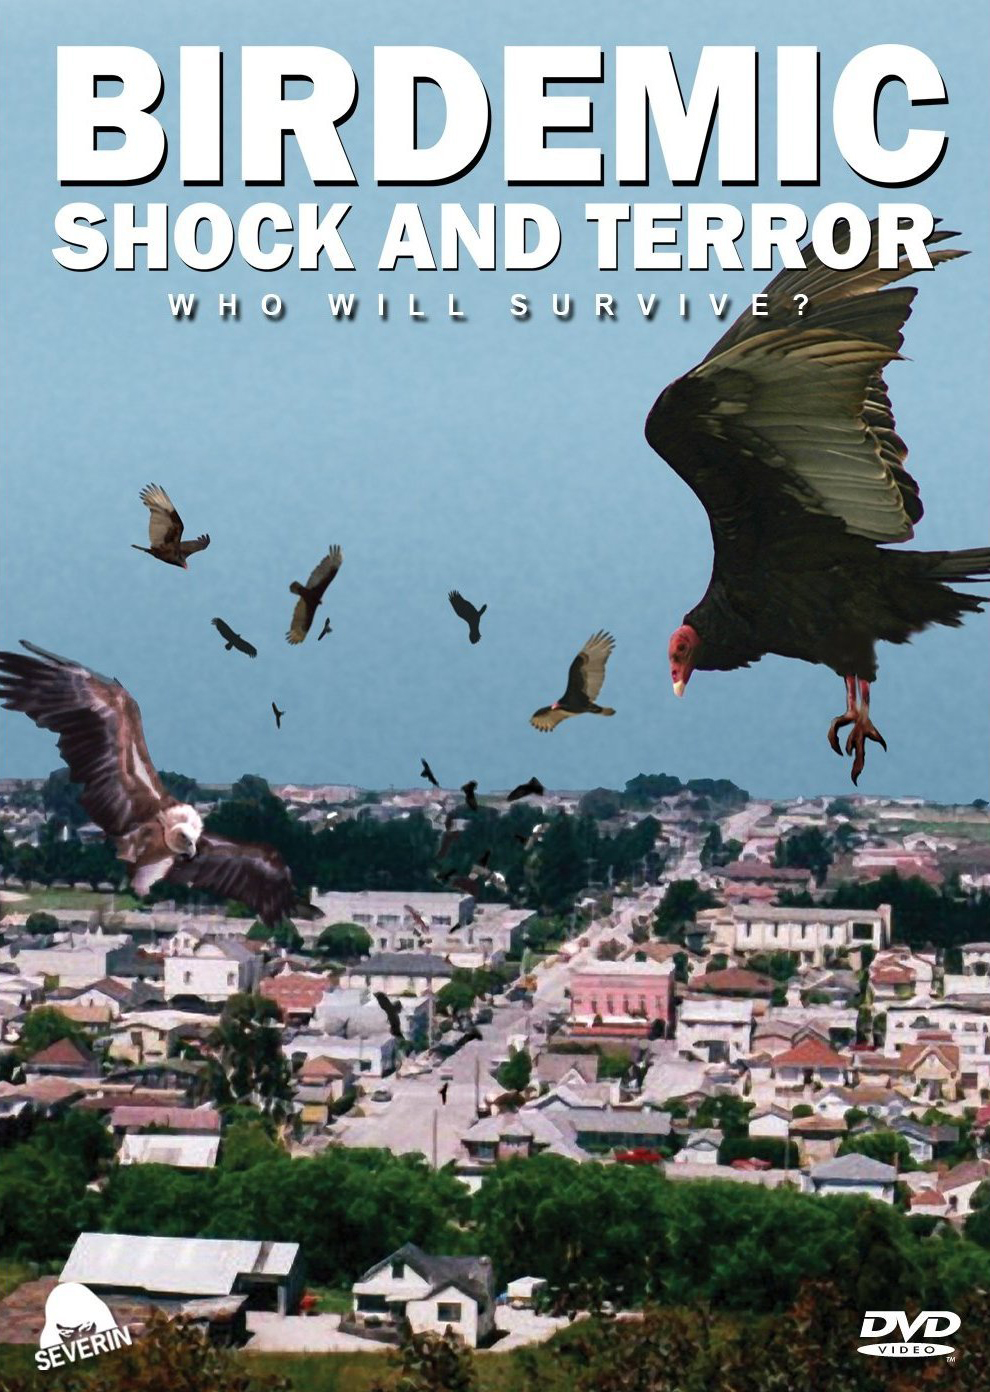 Birdemic - Shock and Horror Image